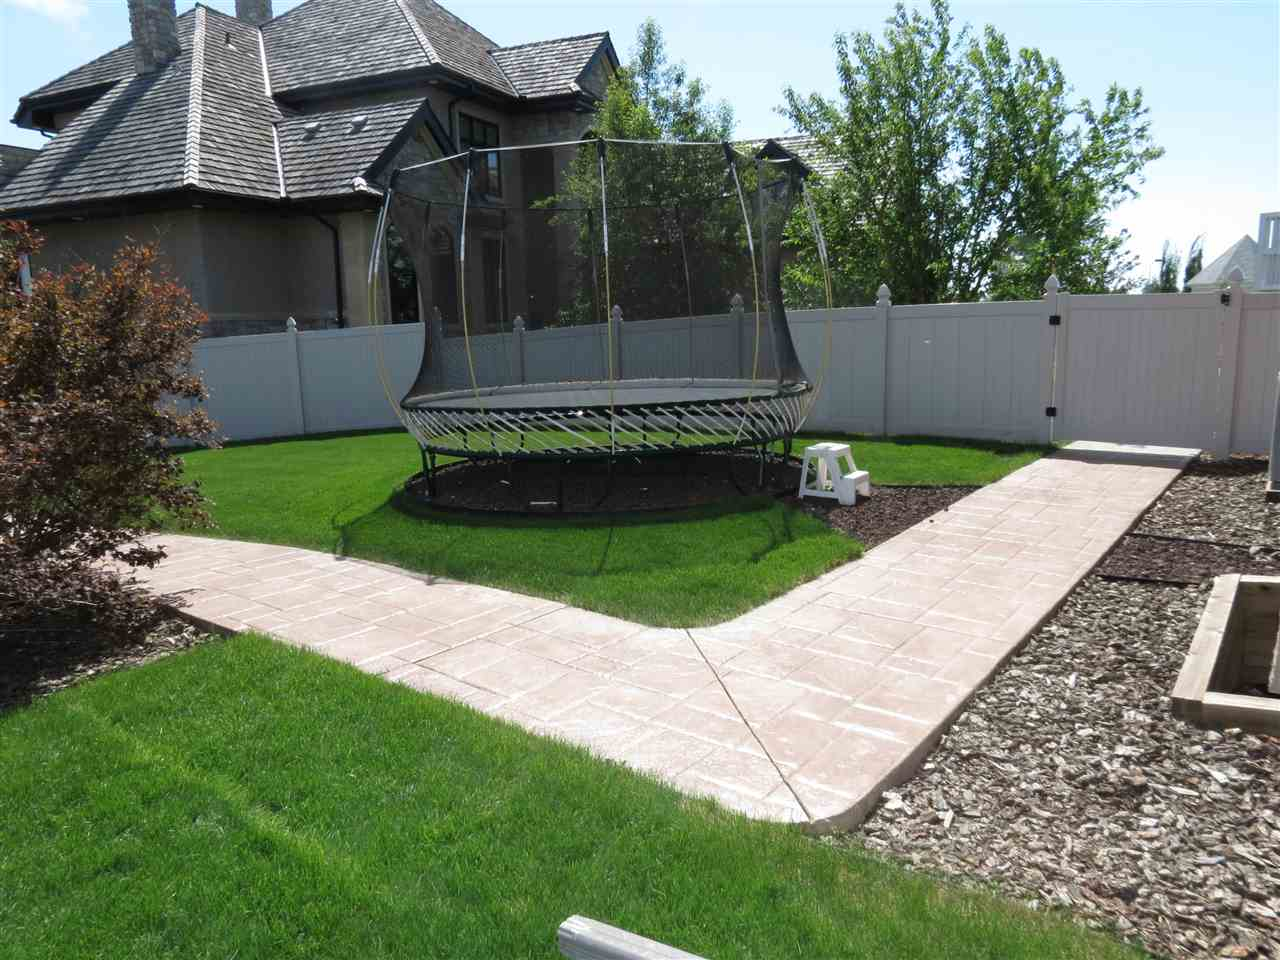 Photo 26: 9706 101 Avenue: Morinville House for sale : MLS(r) # E4052808